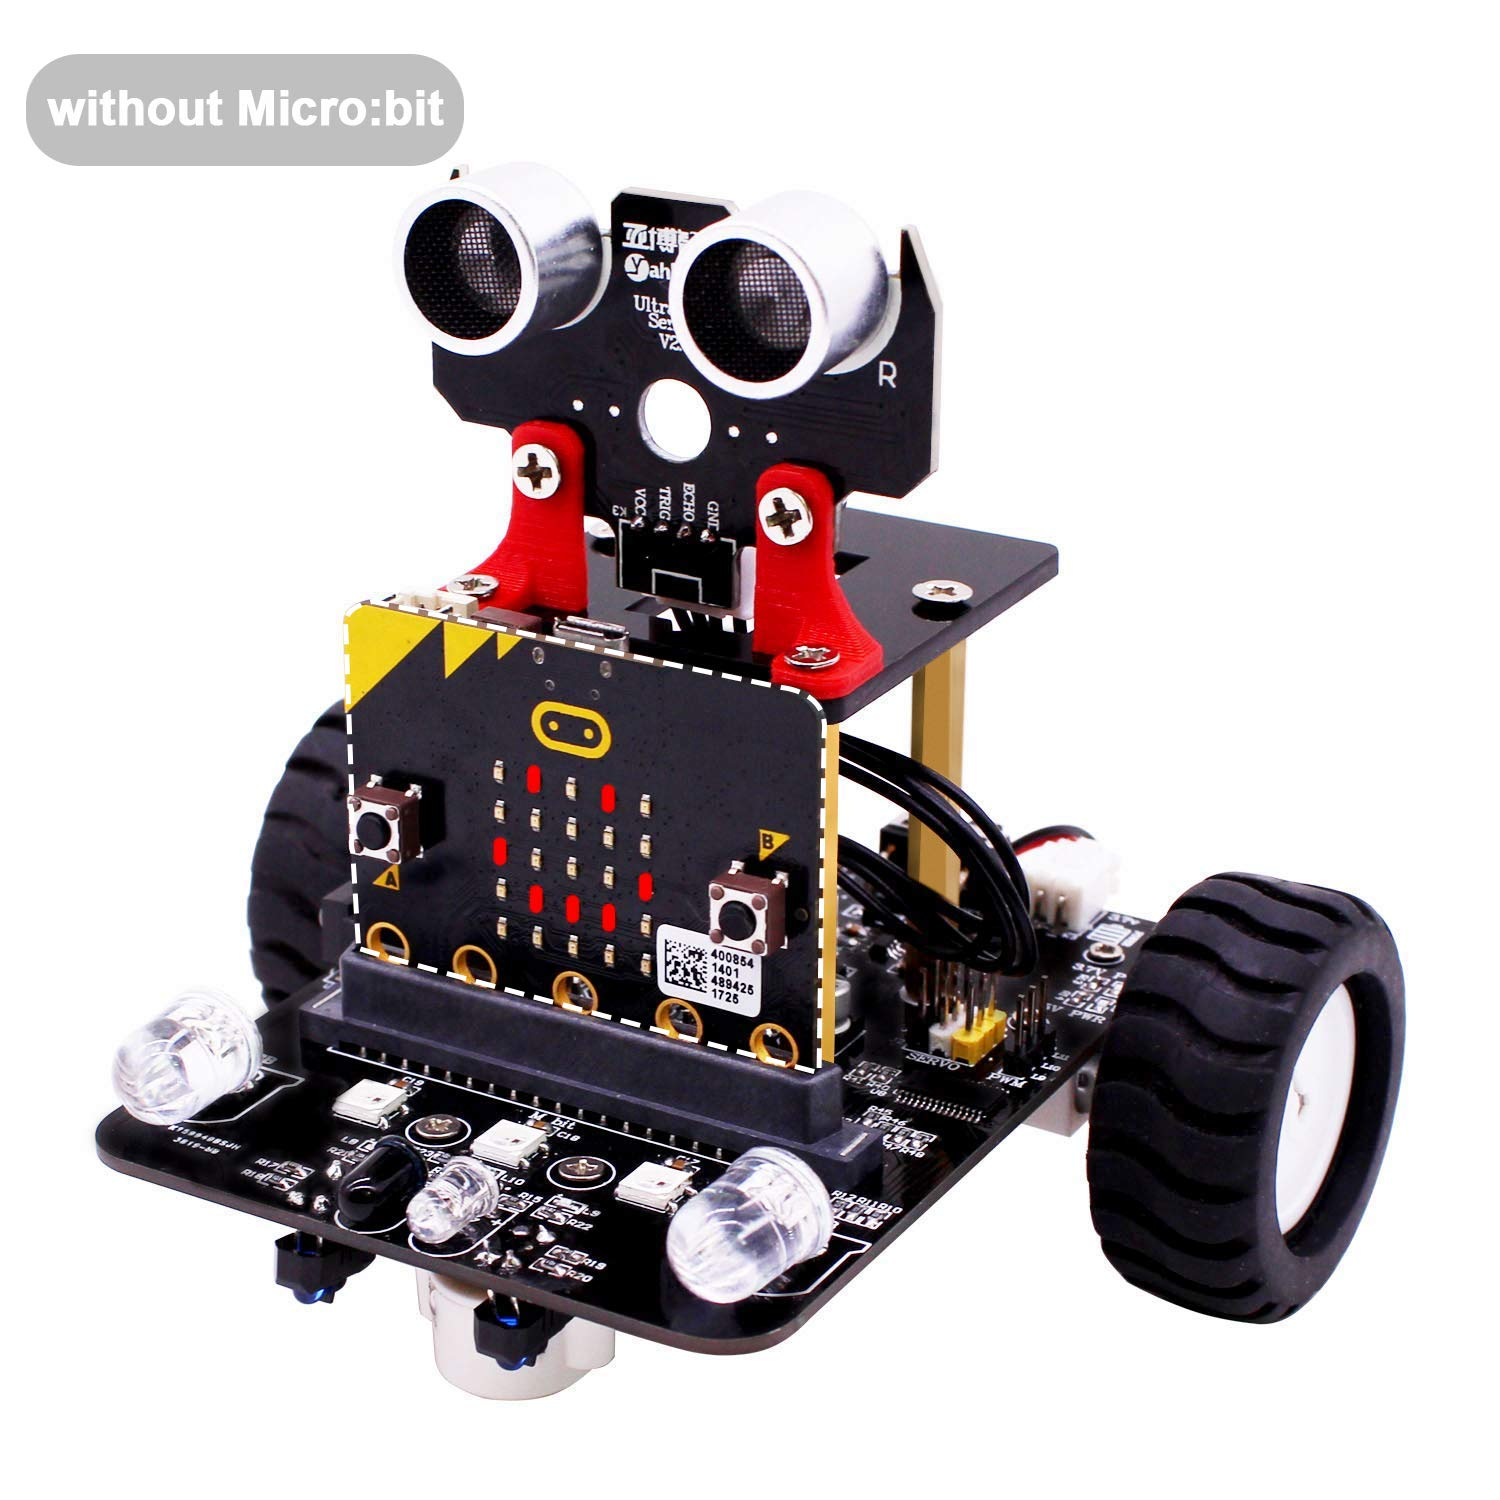 Yahboom Robot Kit for Microbit STEM Education for Kids to Programmable BBC  Micro:bit DIY Toy Car with Tutorial Electronic Science for 8+ (Without